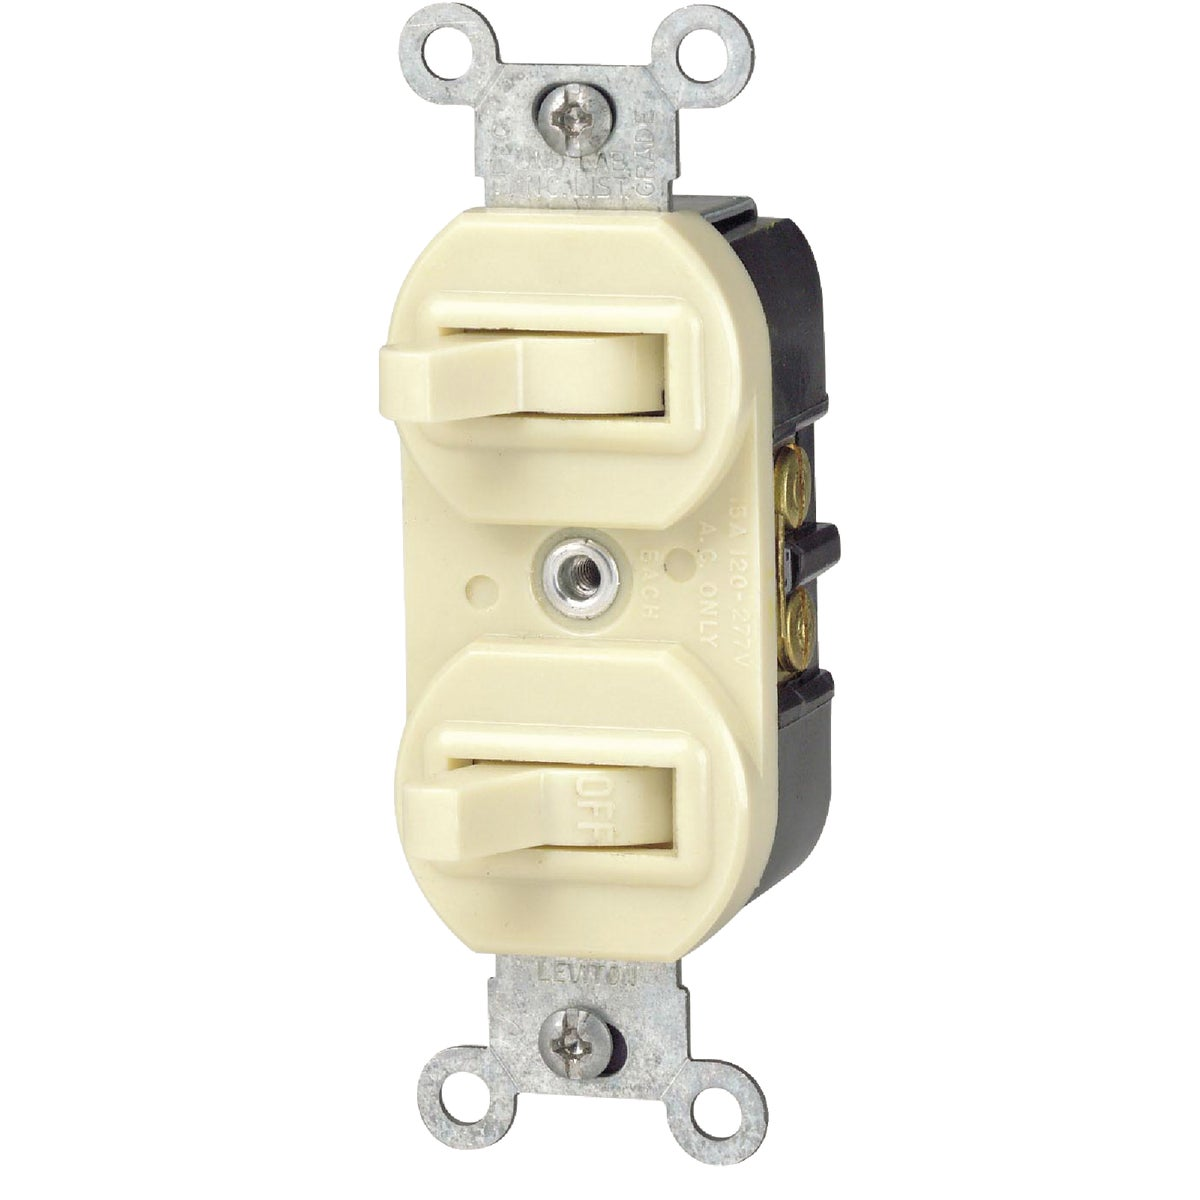 IVORY DUPLEX SWITCH